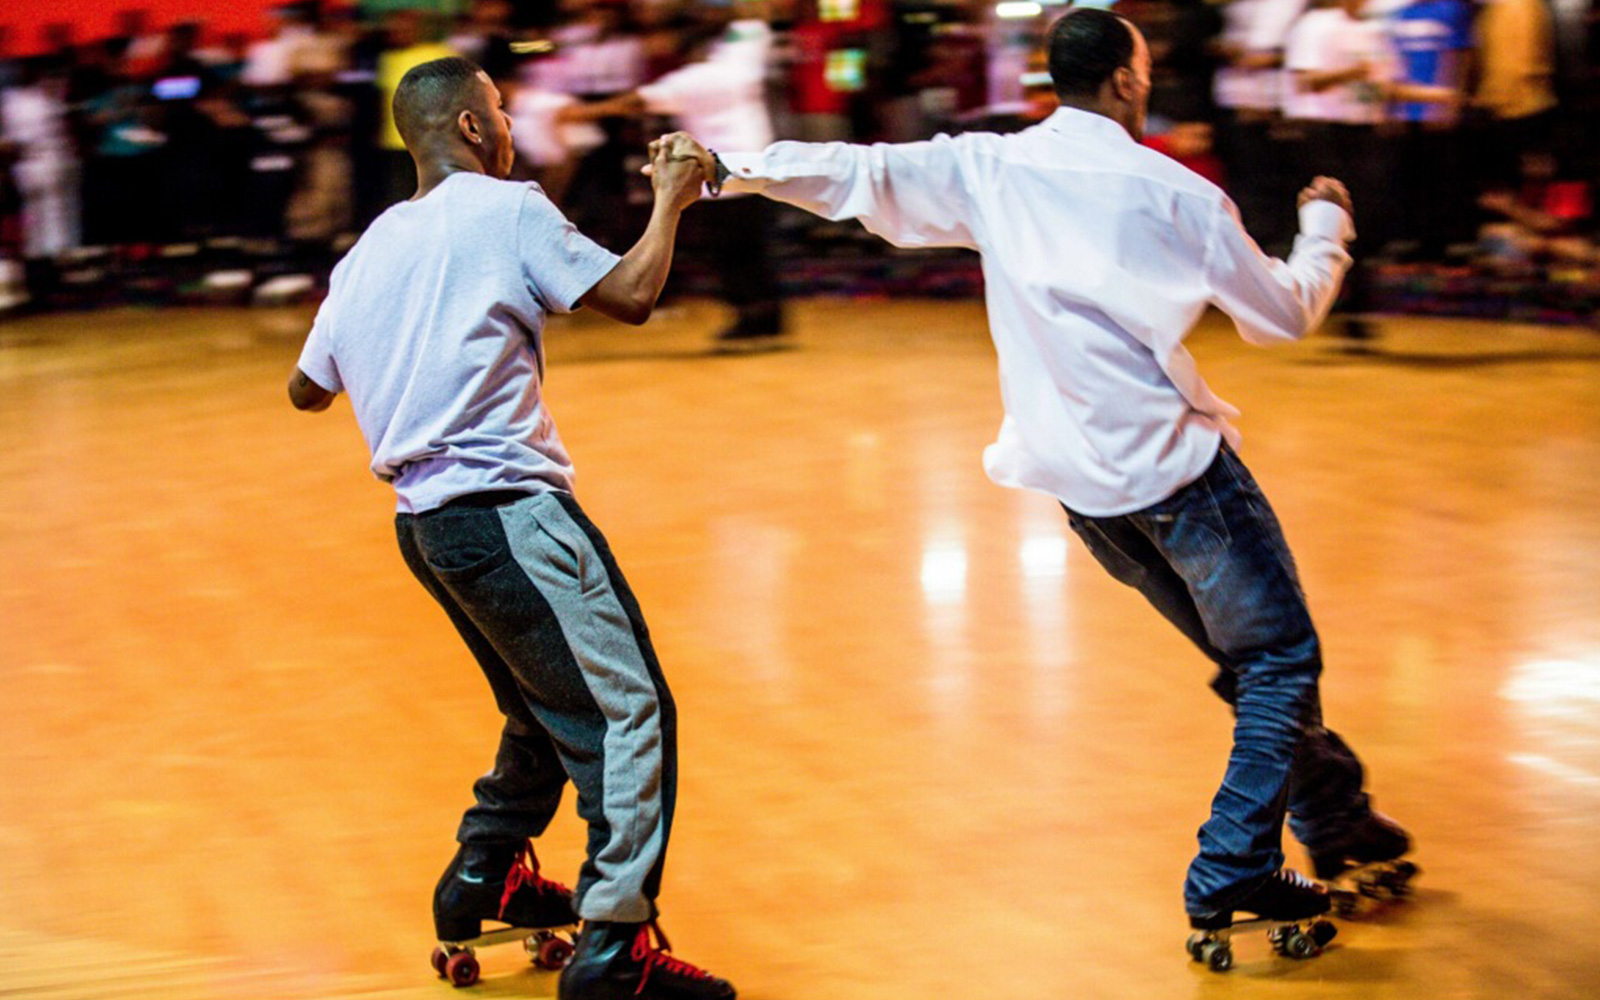 RA: Soul on wheels: How music for the roller rink impacted